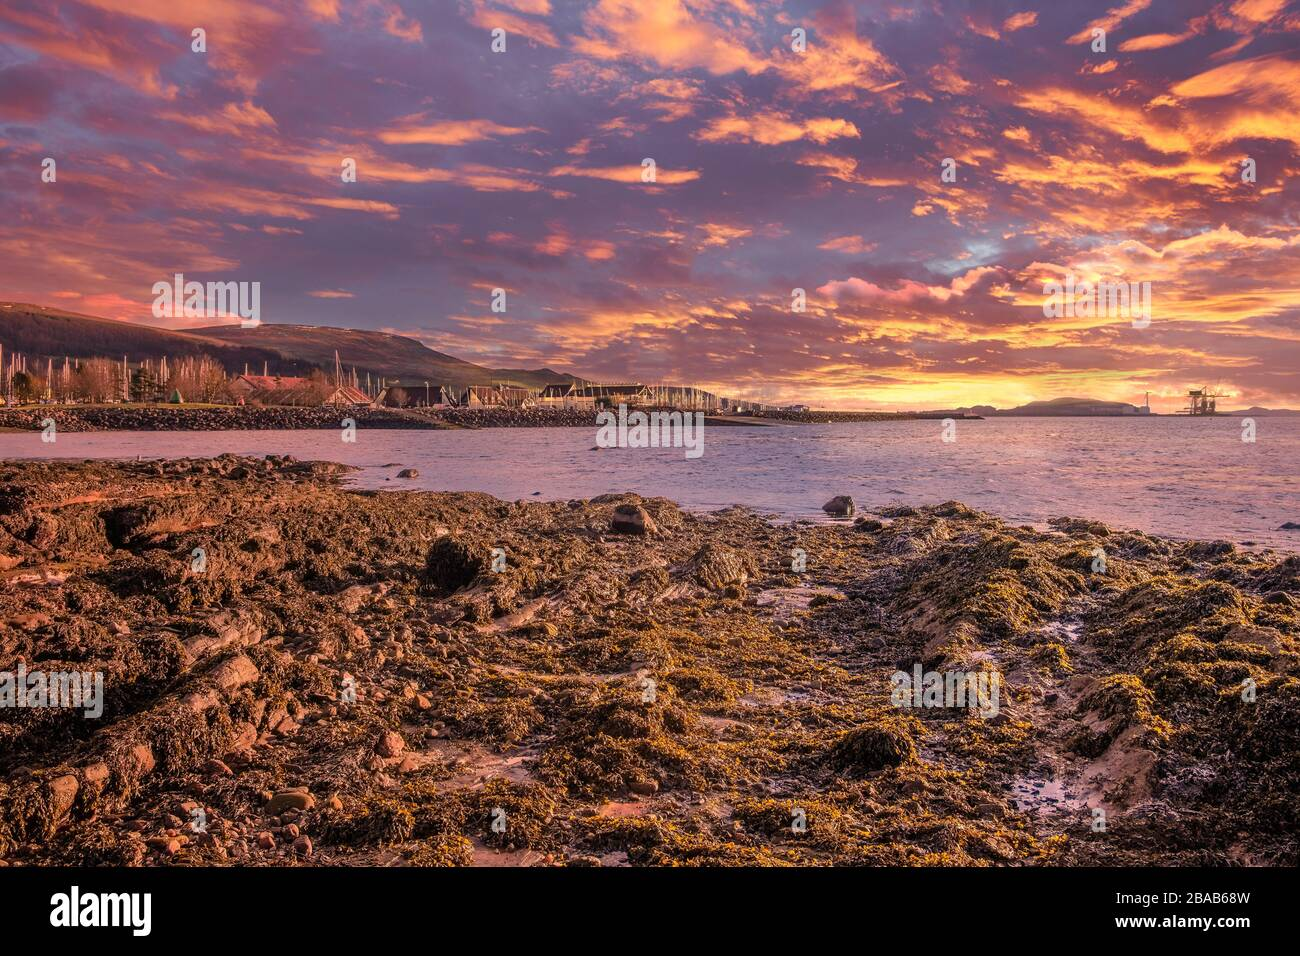 Red Tide Fish High Resolution Stock Photography And Images Alamy